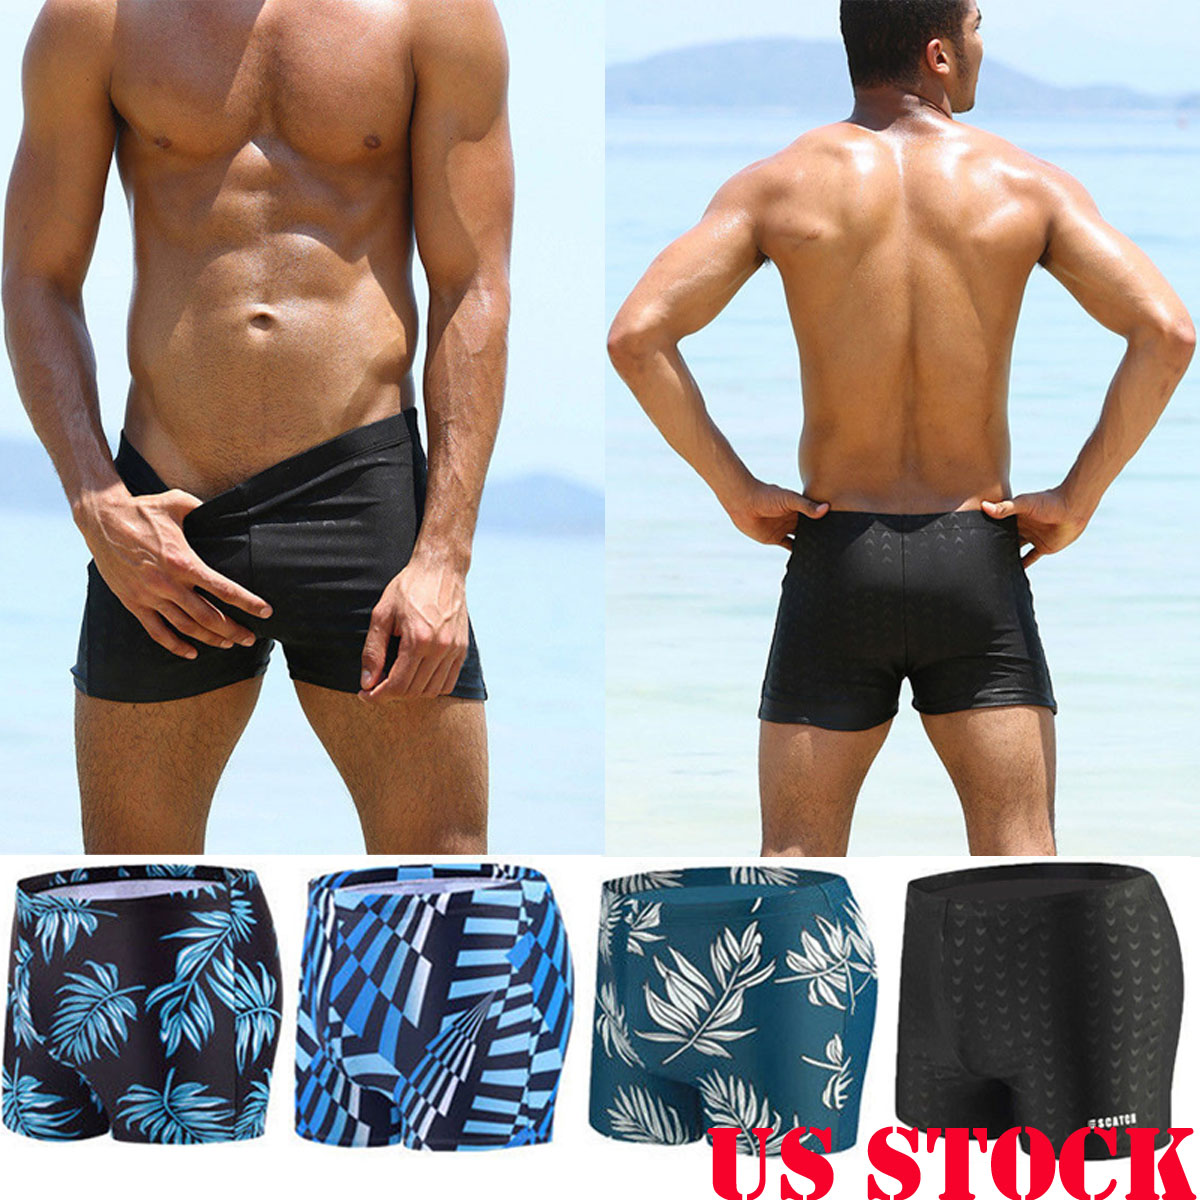 1ee5ca16358a8 Details about US Men s Boxer Briefs Swimming Swim Shorts Trunks Swimwear  Underwear Pants